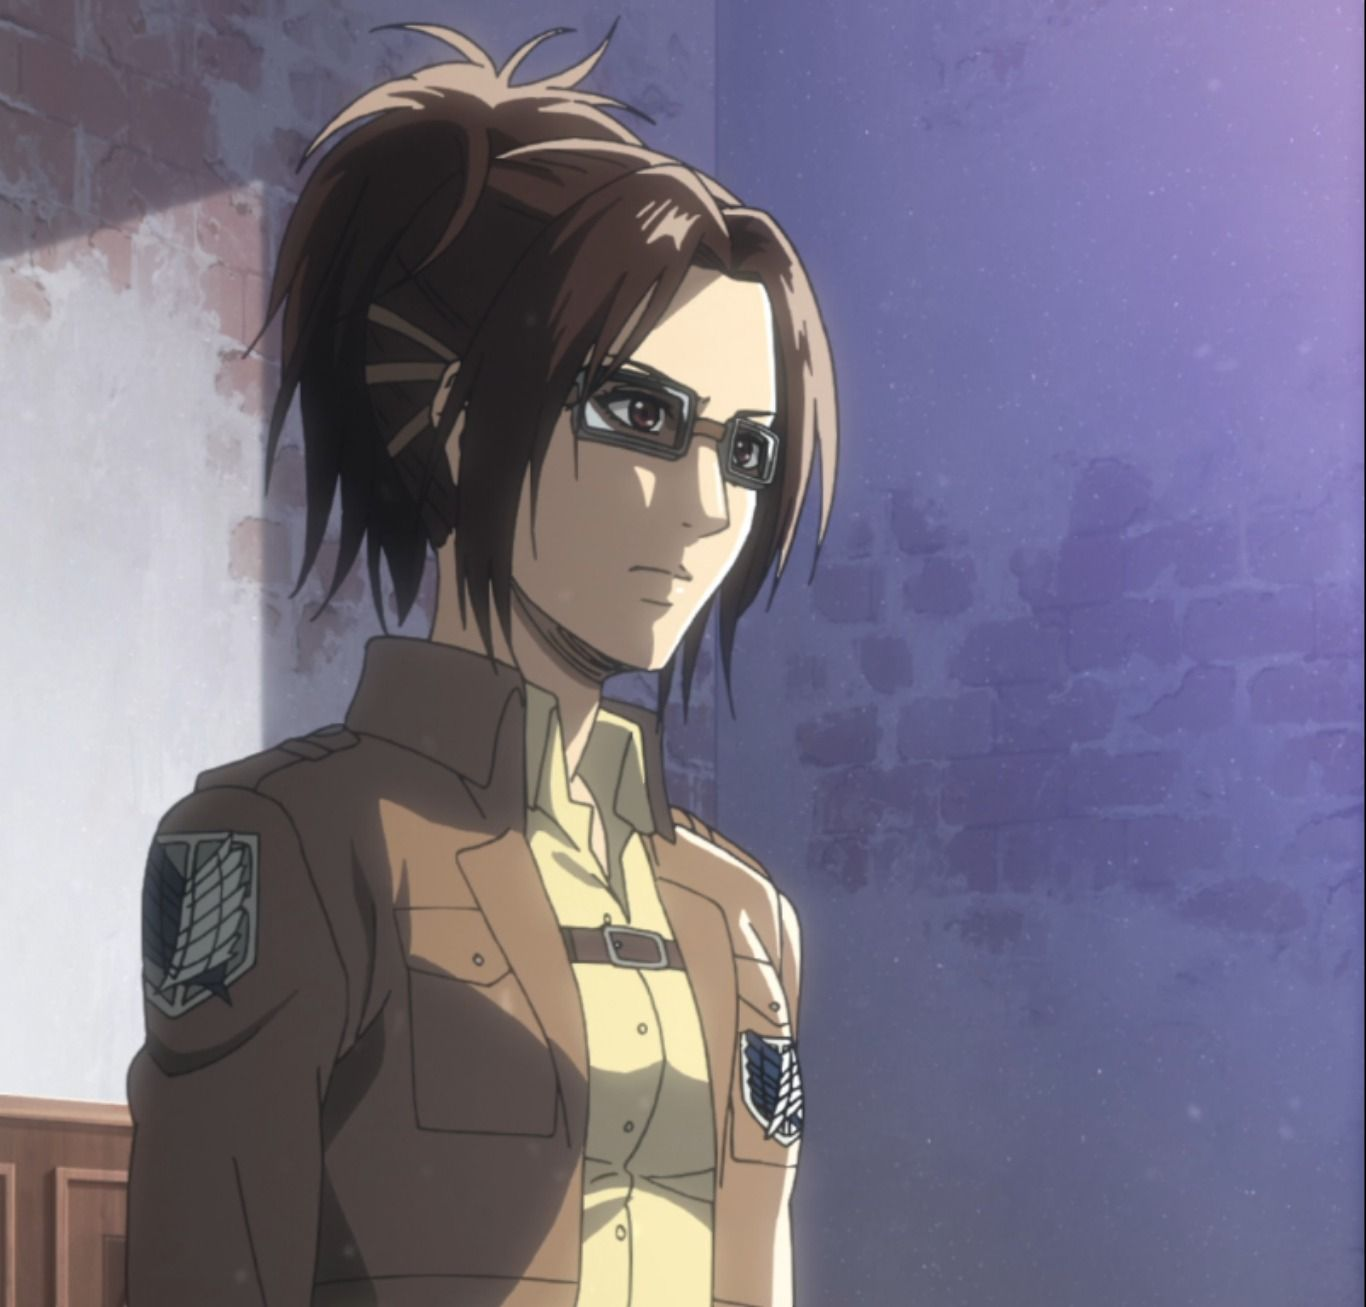 Pin by shams on Icons Attack on titan, Anime art, Anime